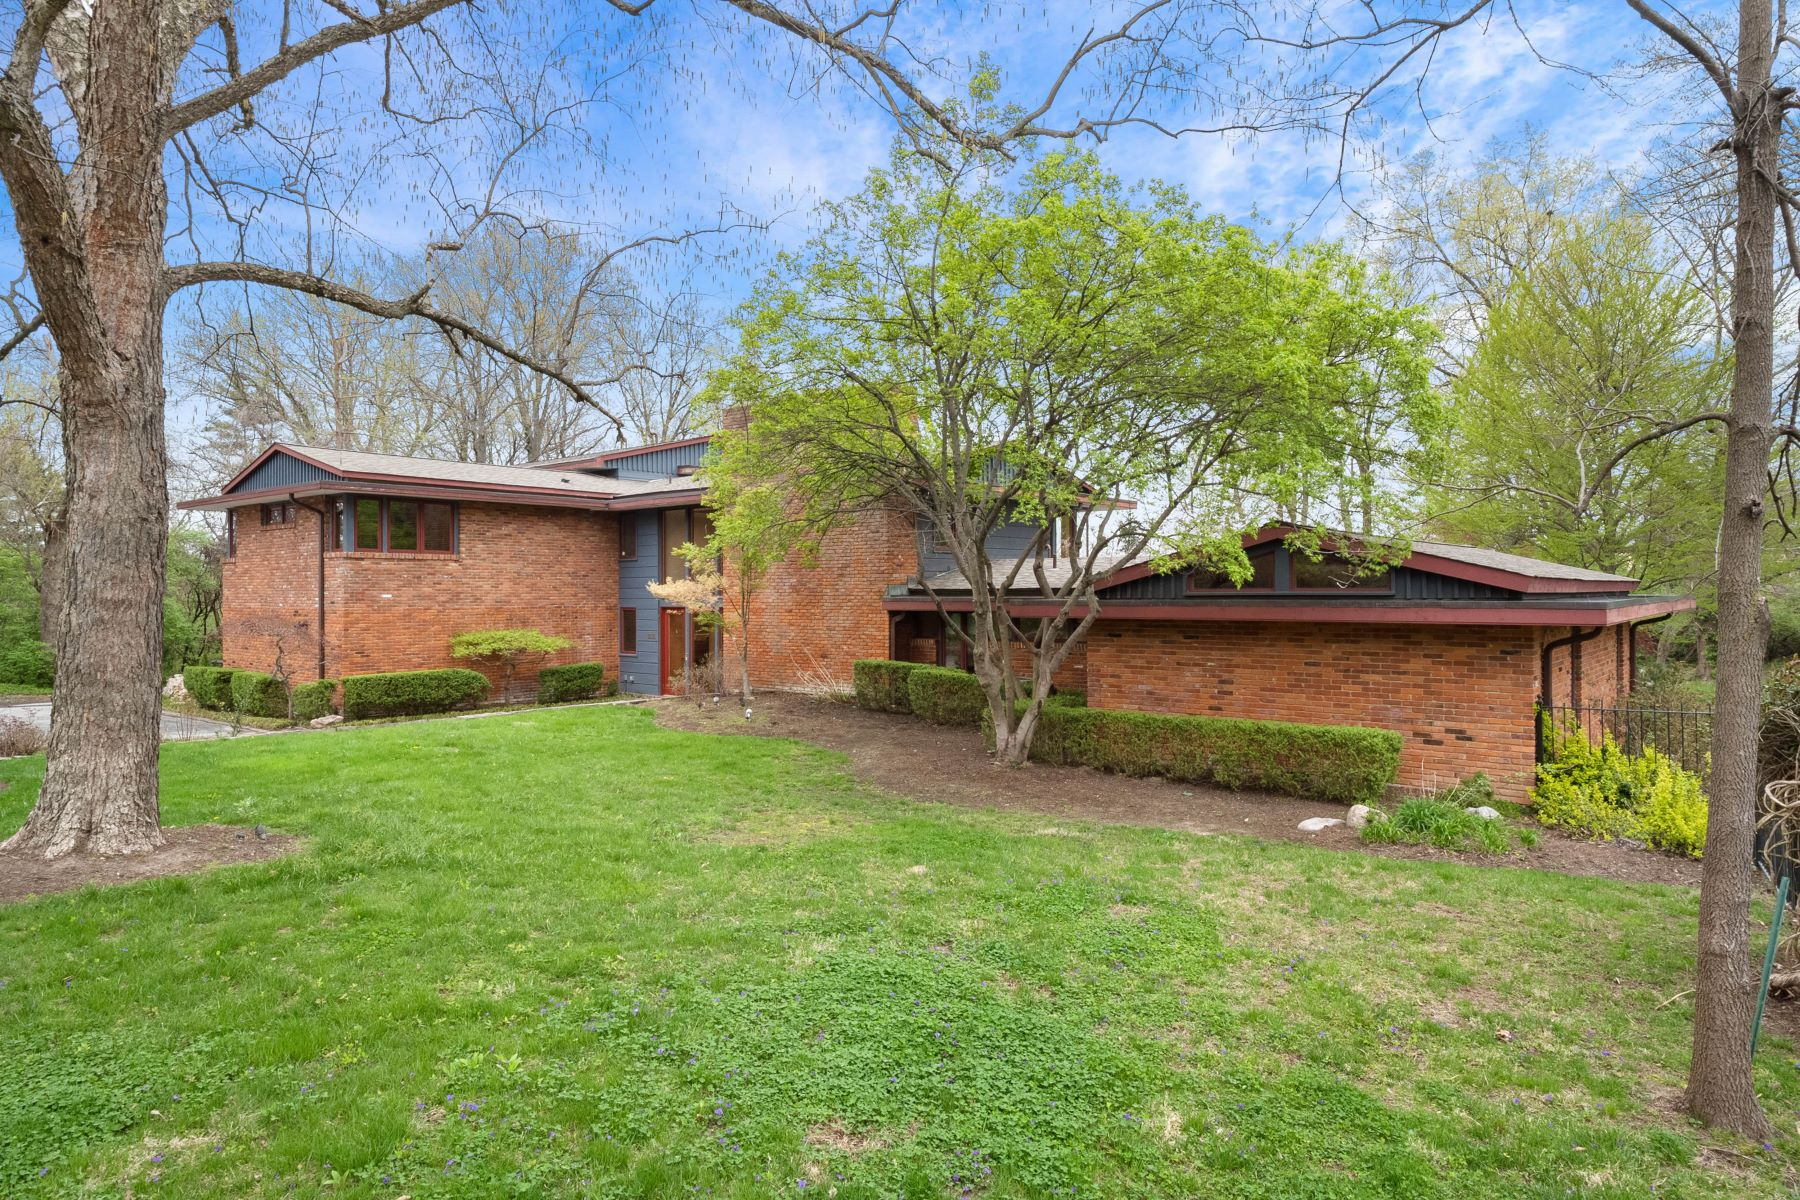 Additional photo for property listing at Important Mid-Century Home Designed by Ted Christner 1160 Lay Road Richmond Heights, Missouri 63124 United States